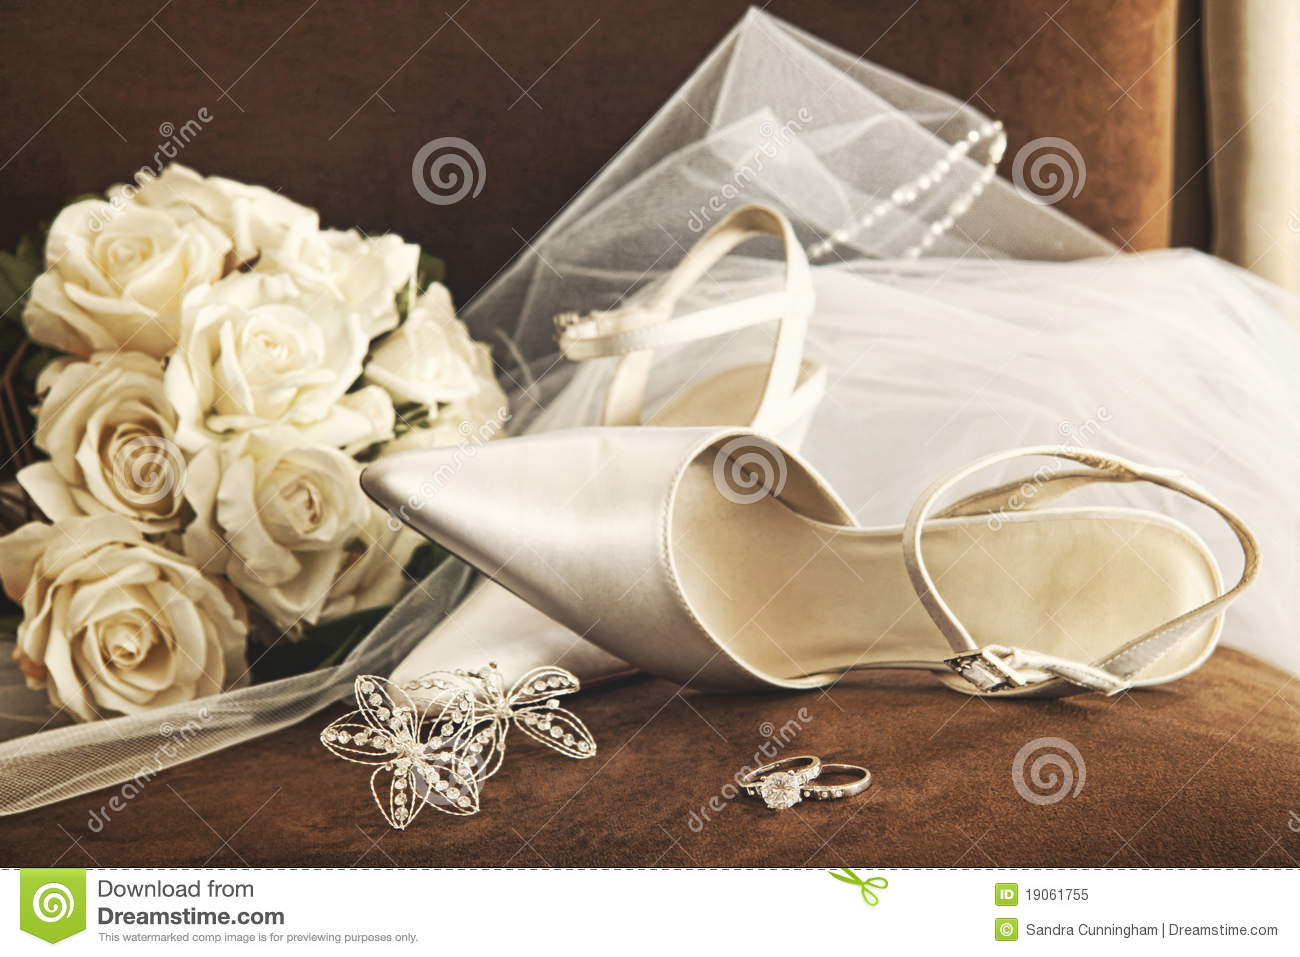 Wedding Shoes With Bouquet Of White Roses And Ring Royalty